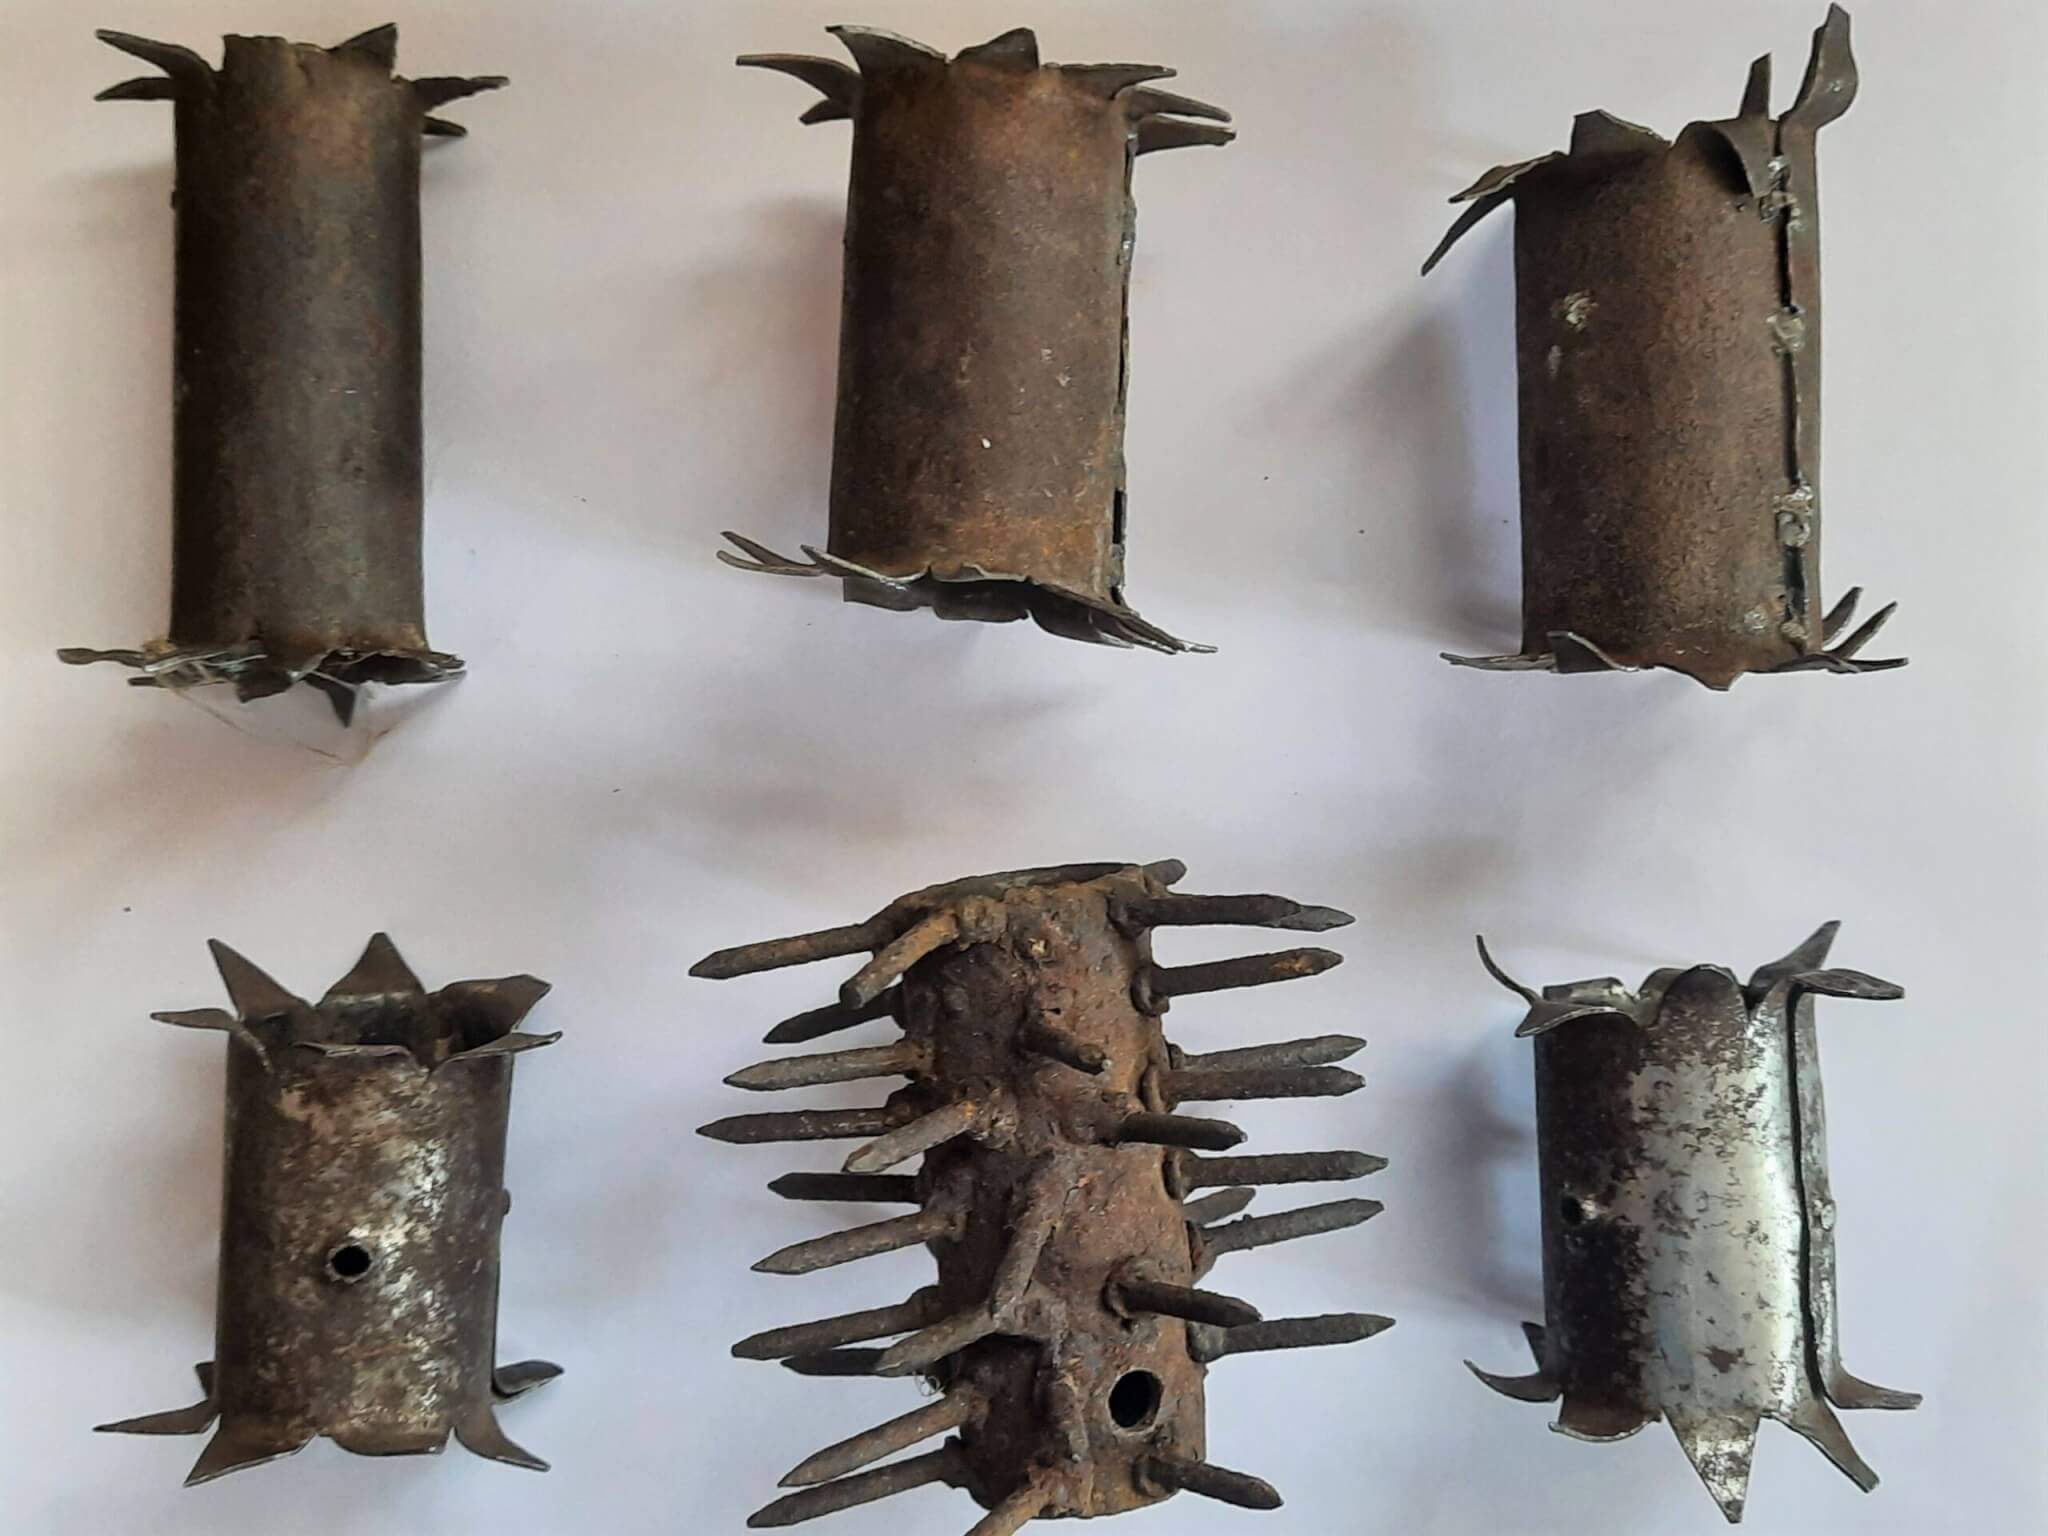 Pictured are six yoke spikes that Animal Rahat confiscated.